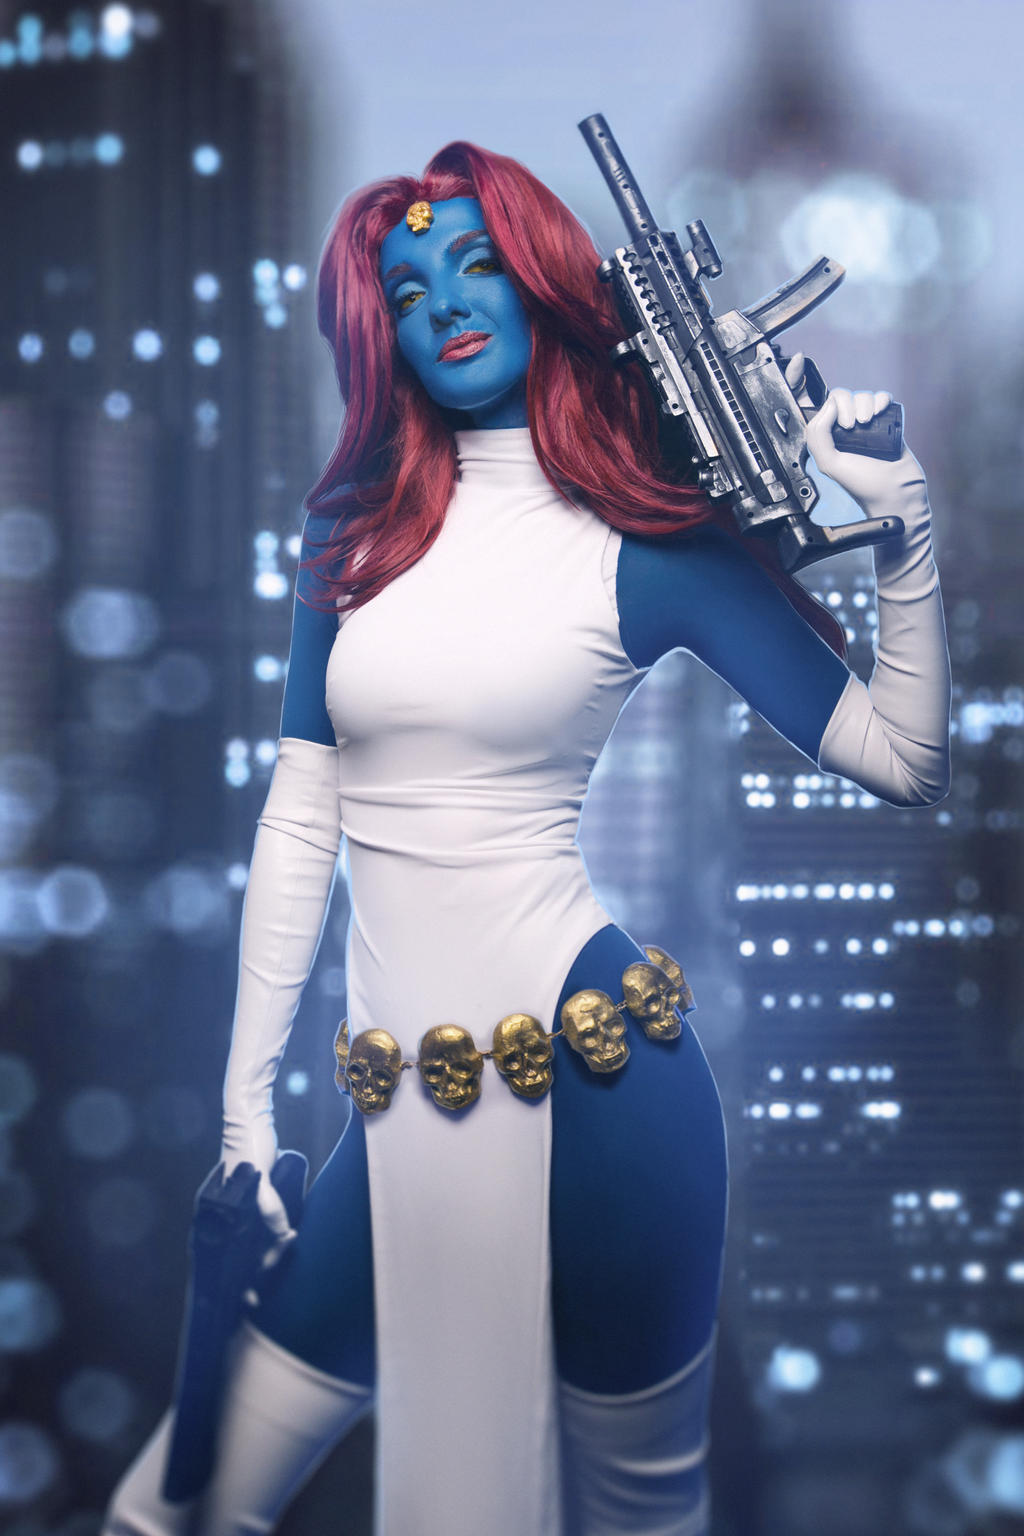 X-MEN - Mystique by ShadeCramer on DeviantArt